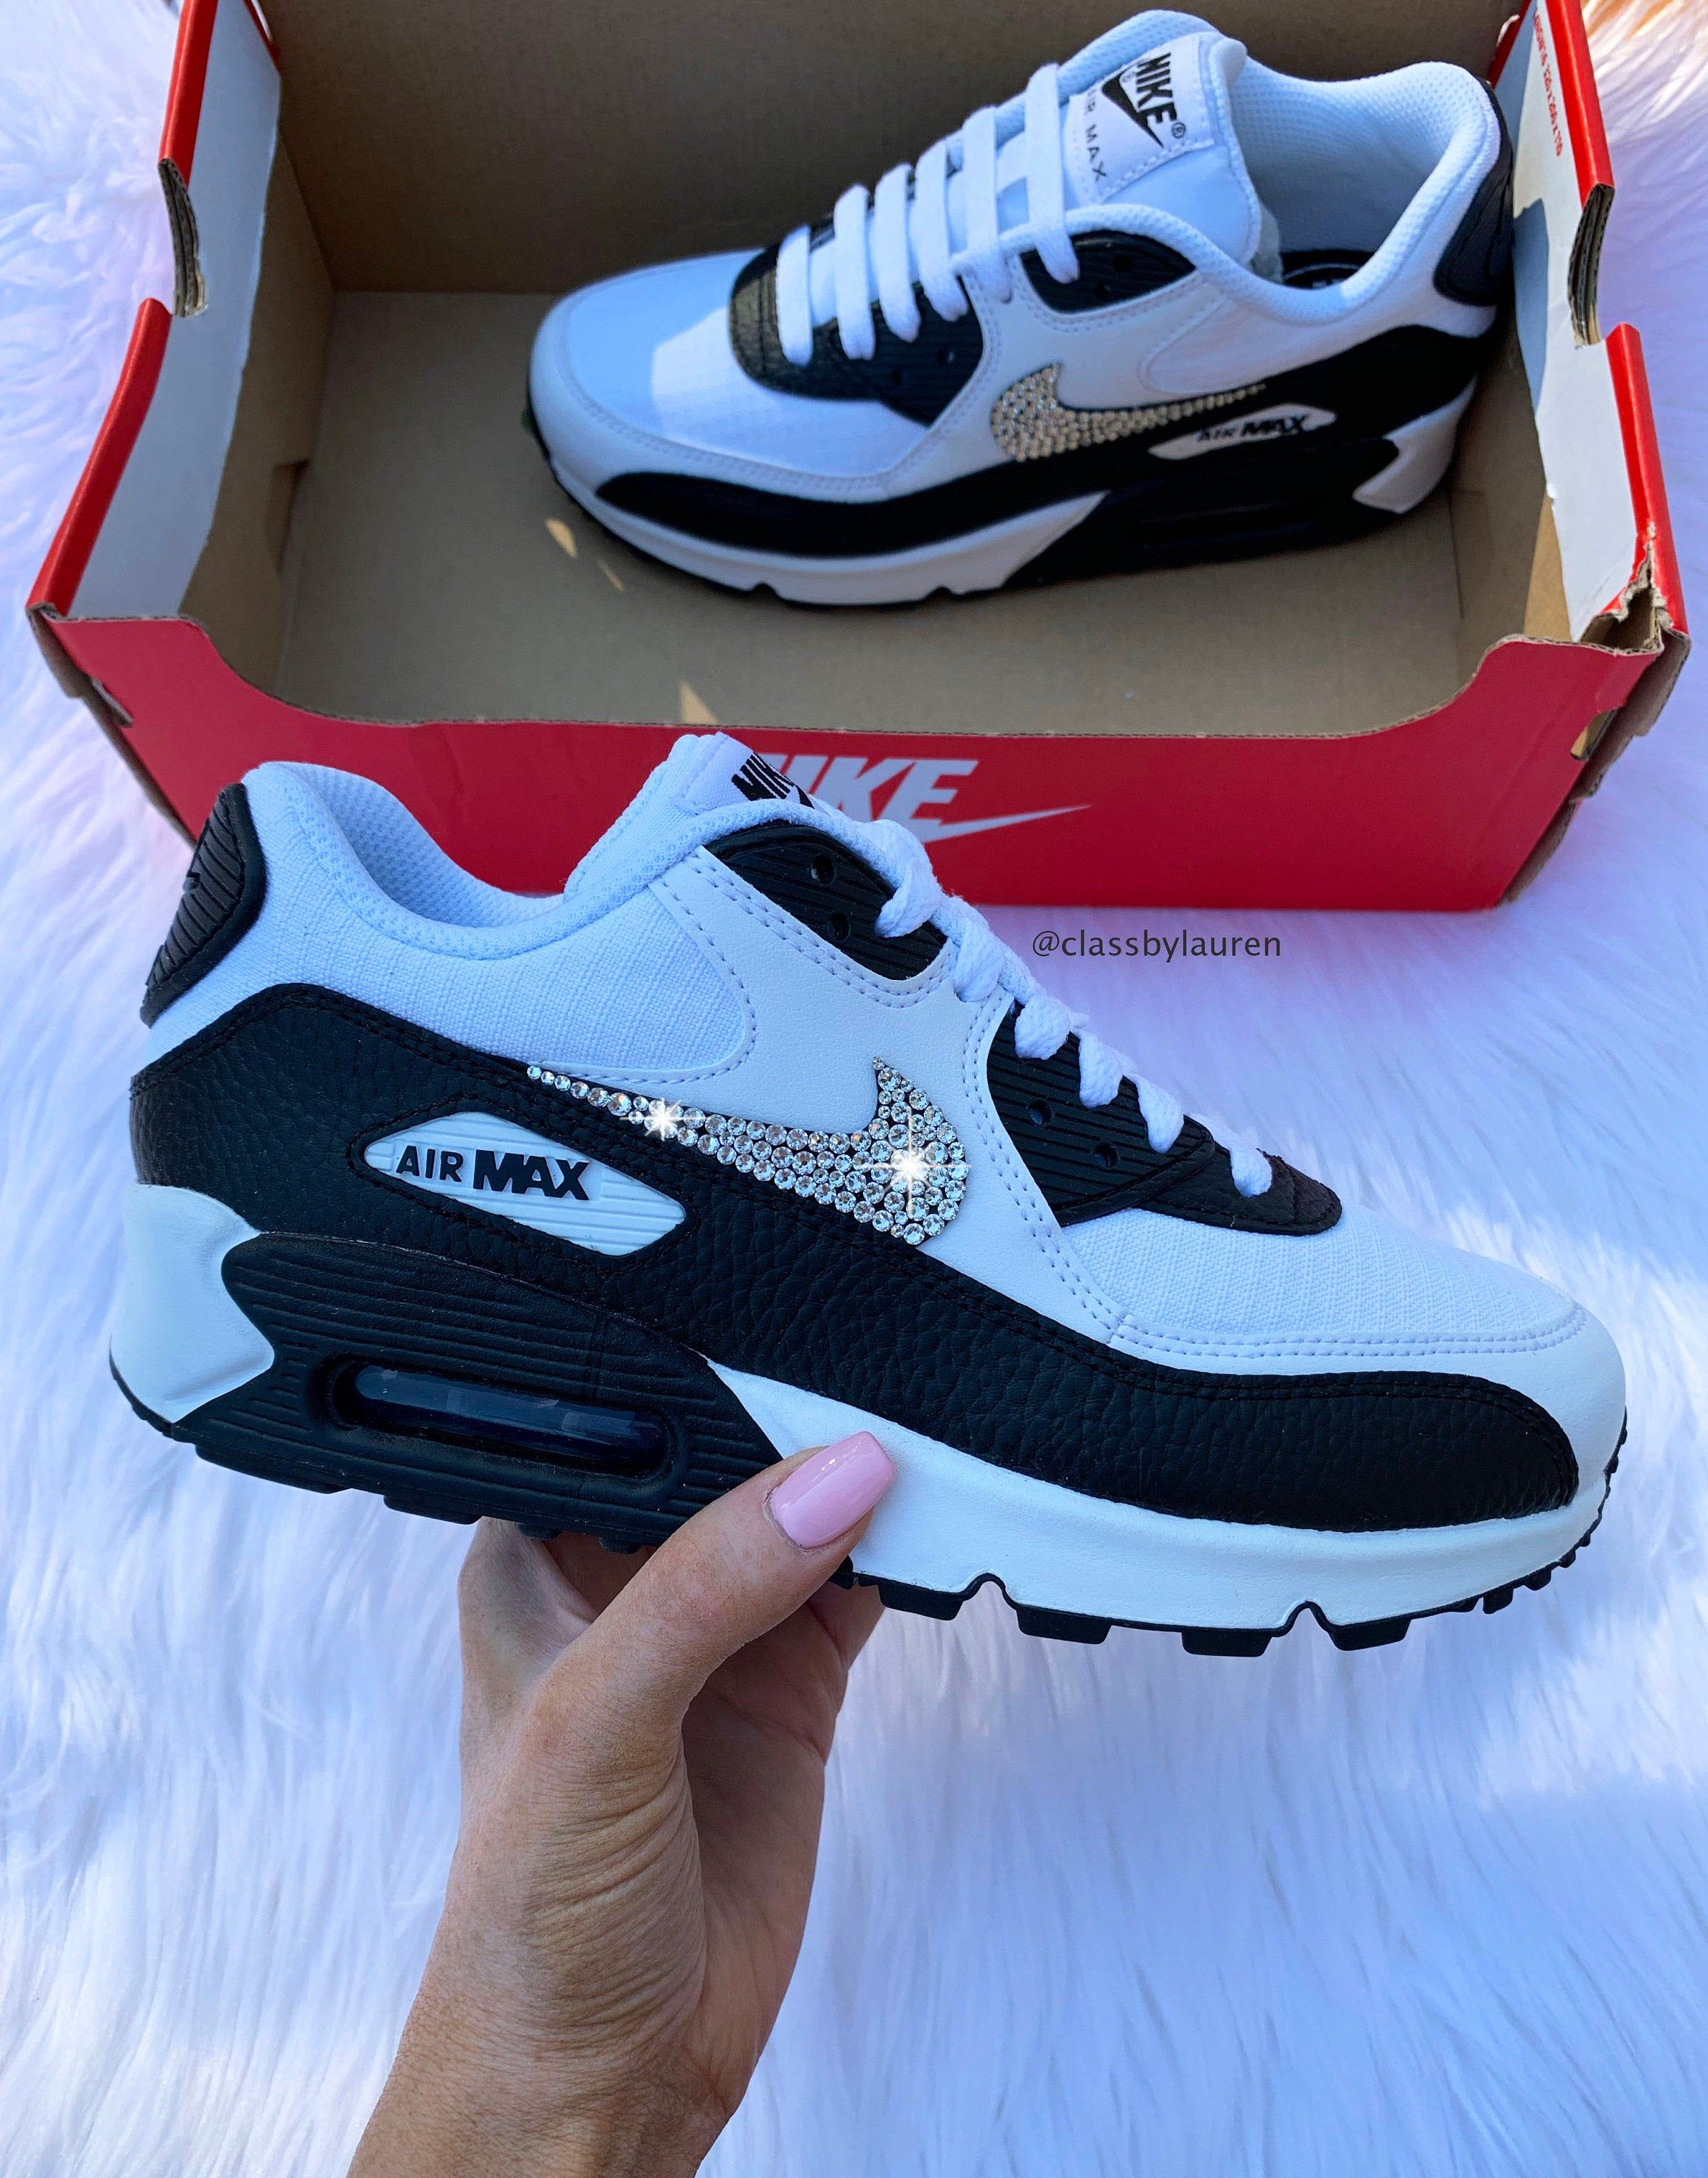 Pin by Rebecca Hutto on Clothes & Shoes in 2020 | Nike air